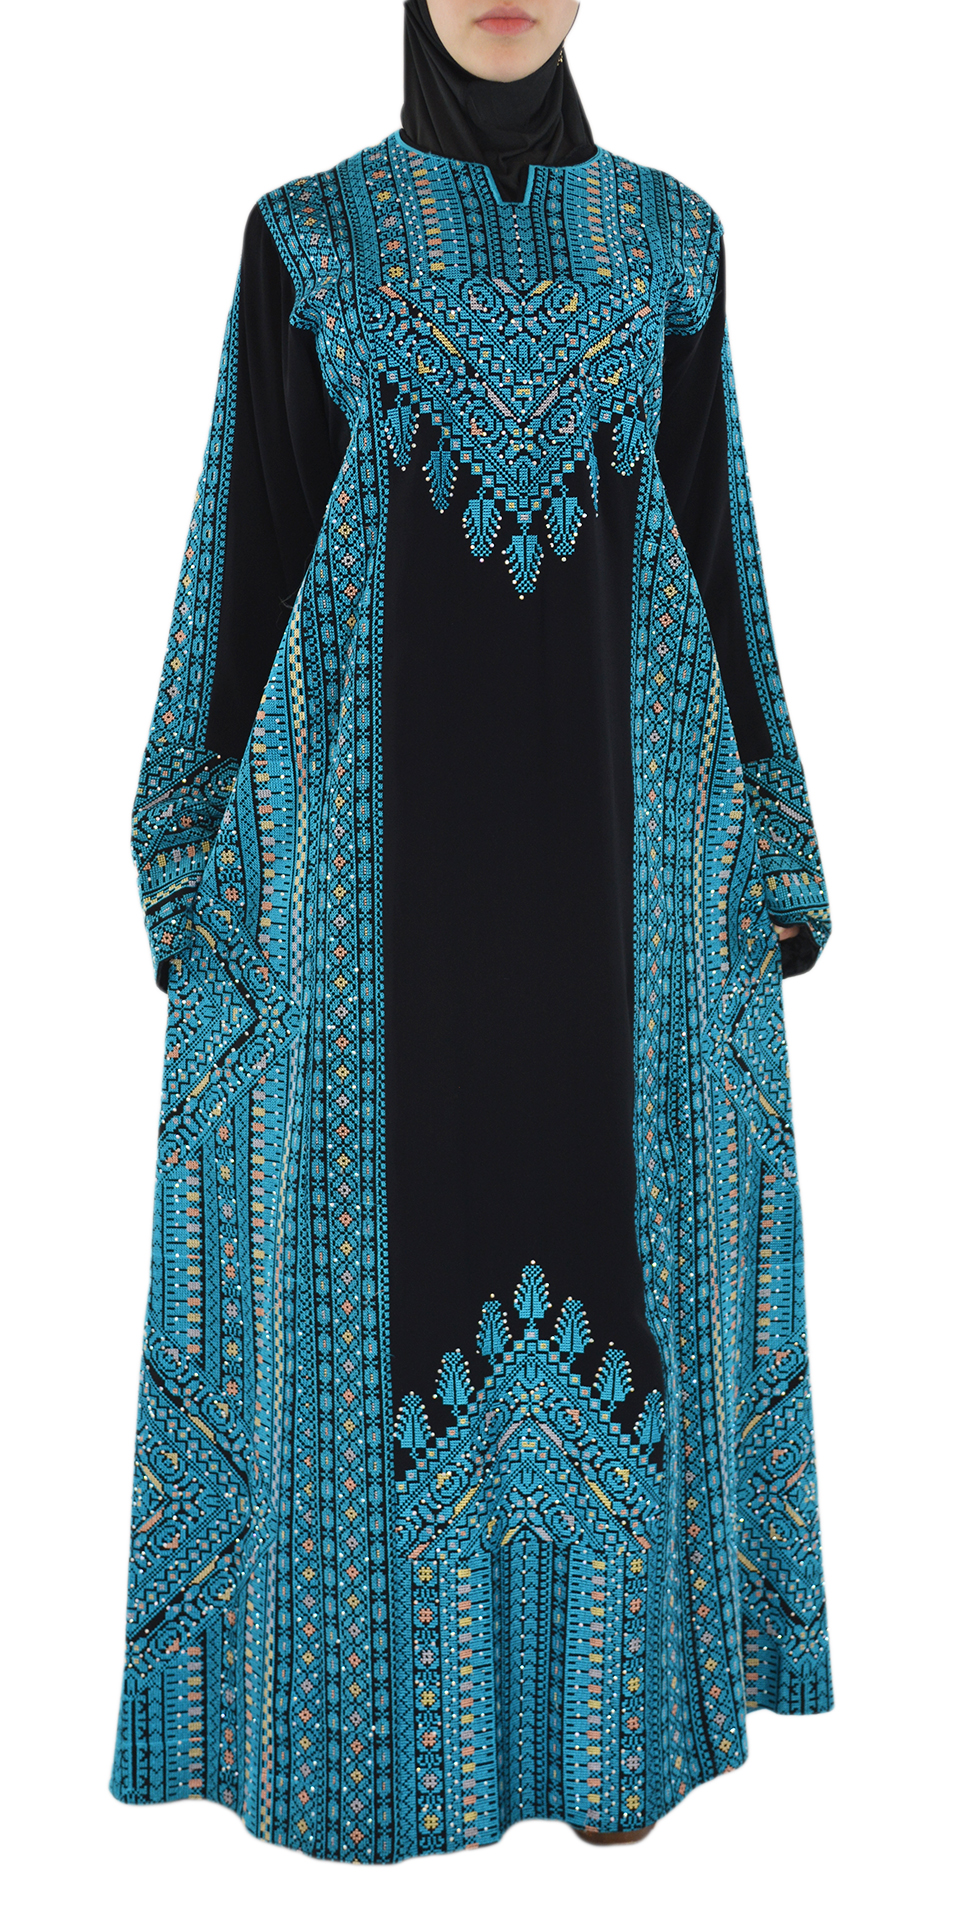 Blue Arabian Embroidered Dress Front Shot Spread